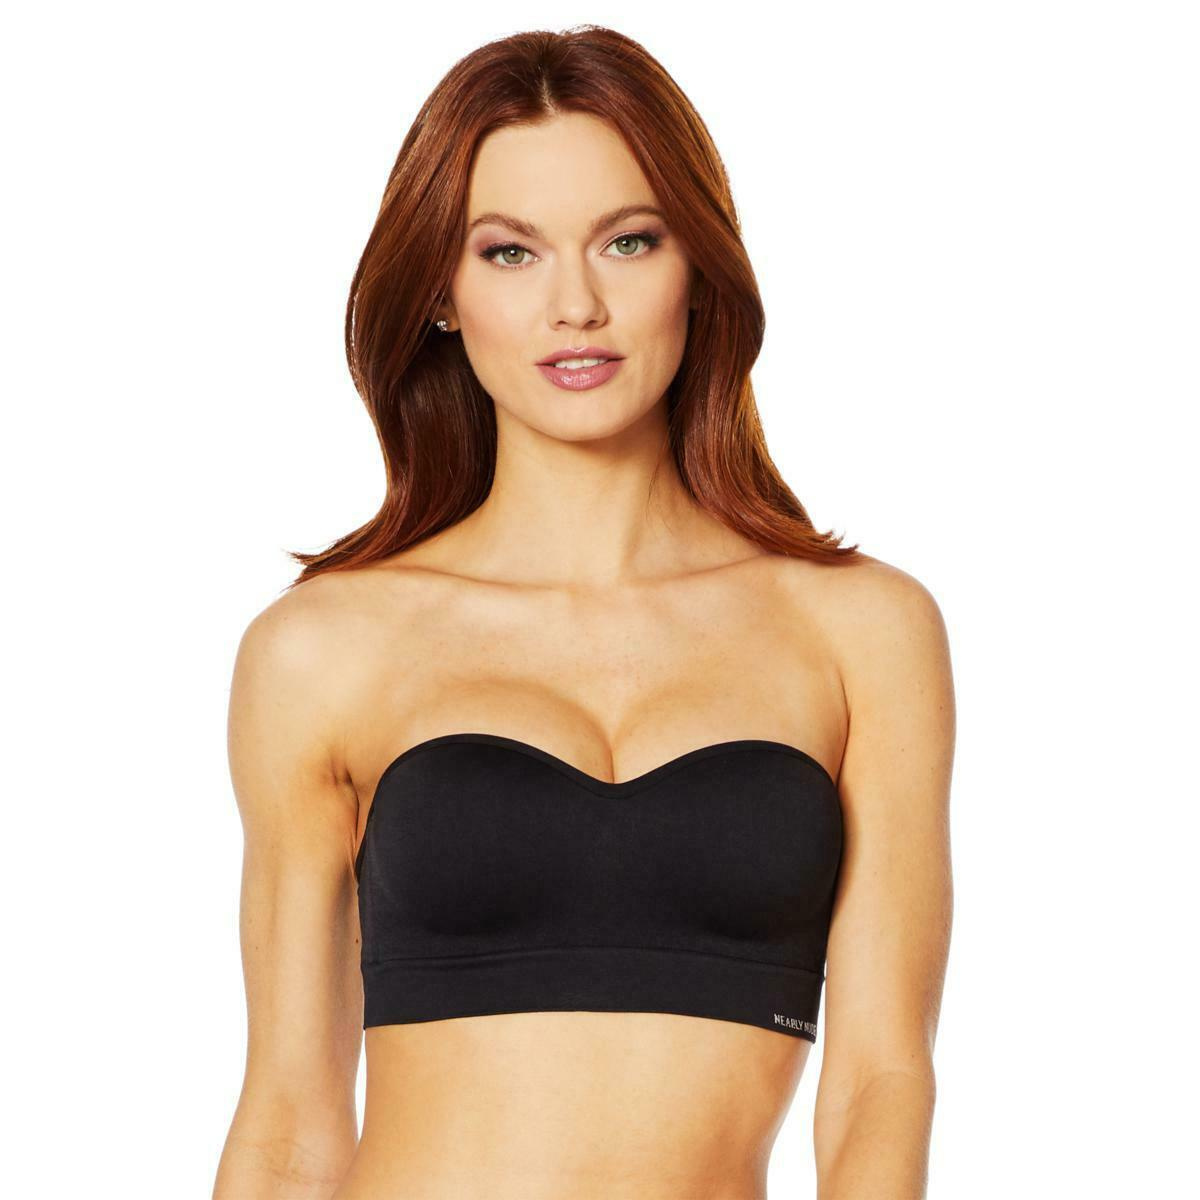 Primary image for Nearly Nude Seamless Bra with Optional Straps in Black, XL (654386) No Tag